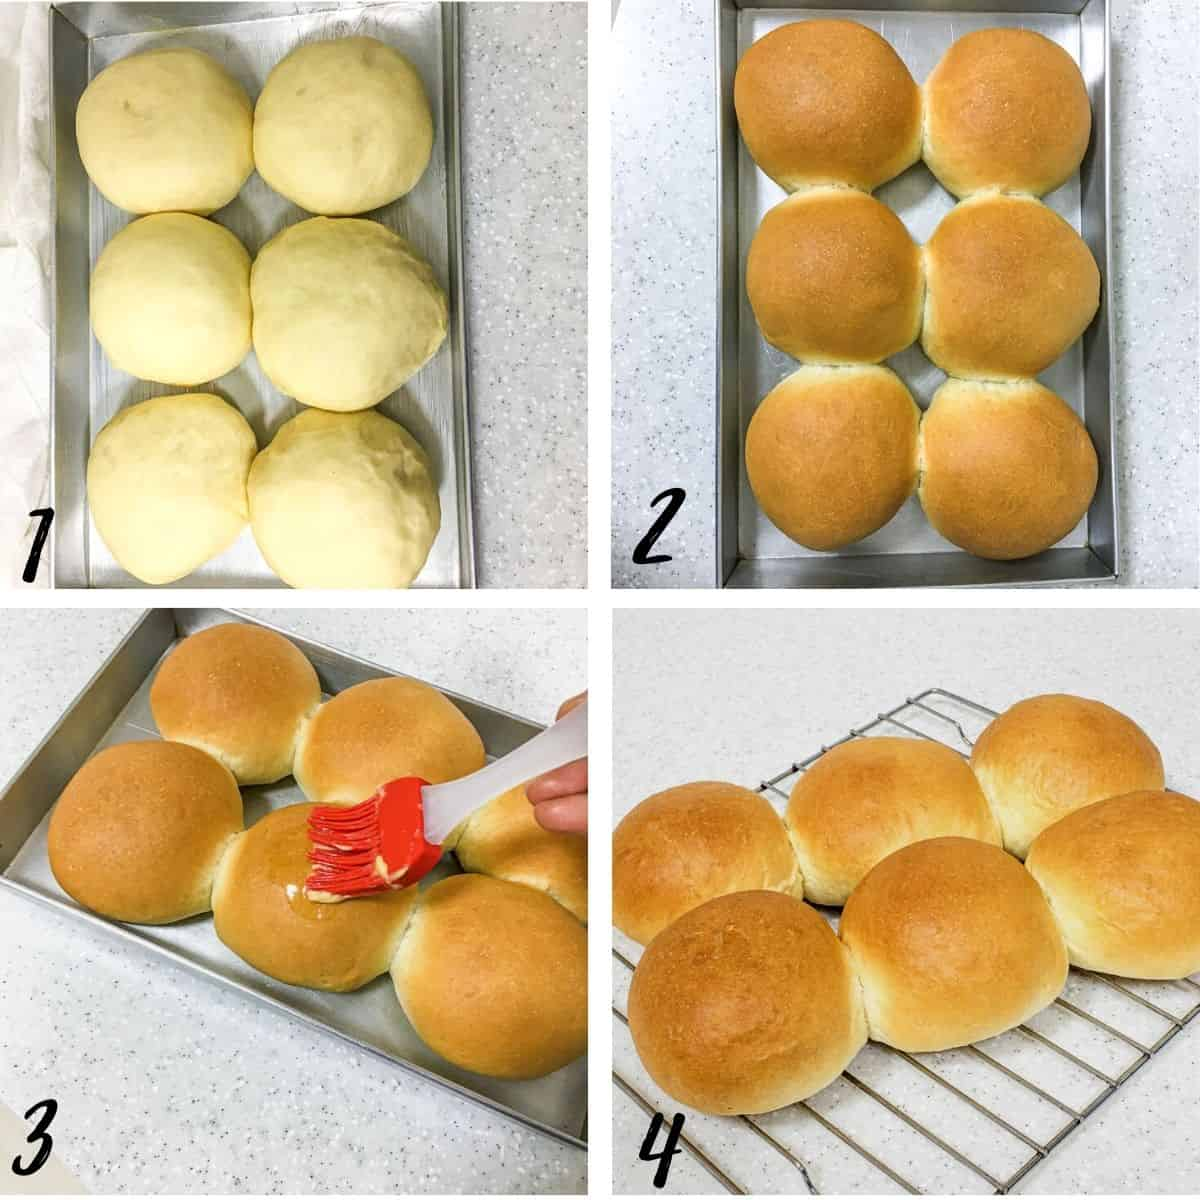 A poster of 4 images showing proof yeast rolls, baked rolls, applying butter to the rolls and cooling the rolls on a wire rack.